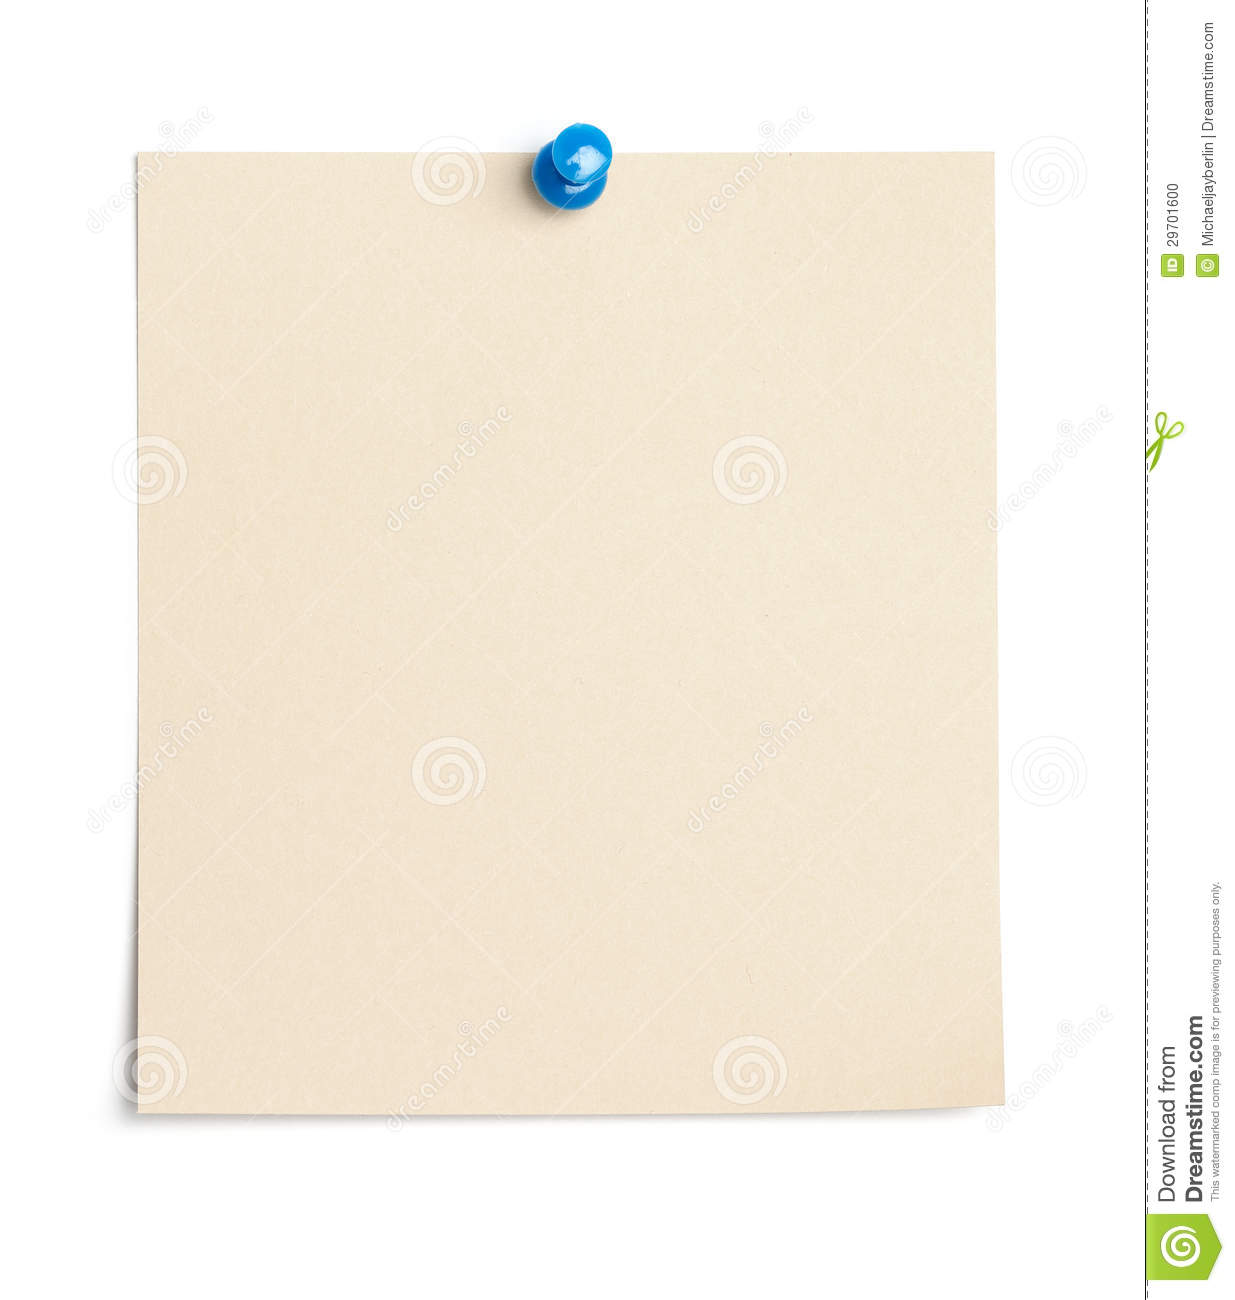 empty piece of paper with thumb tack stock photo - image of work